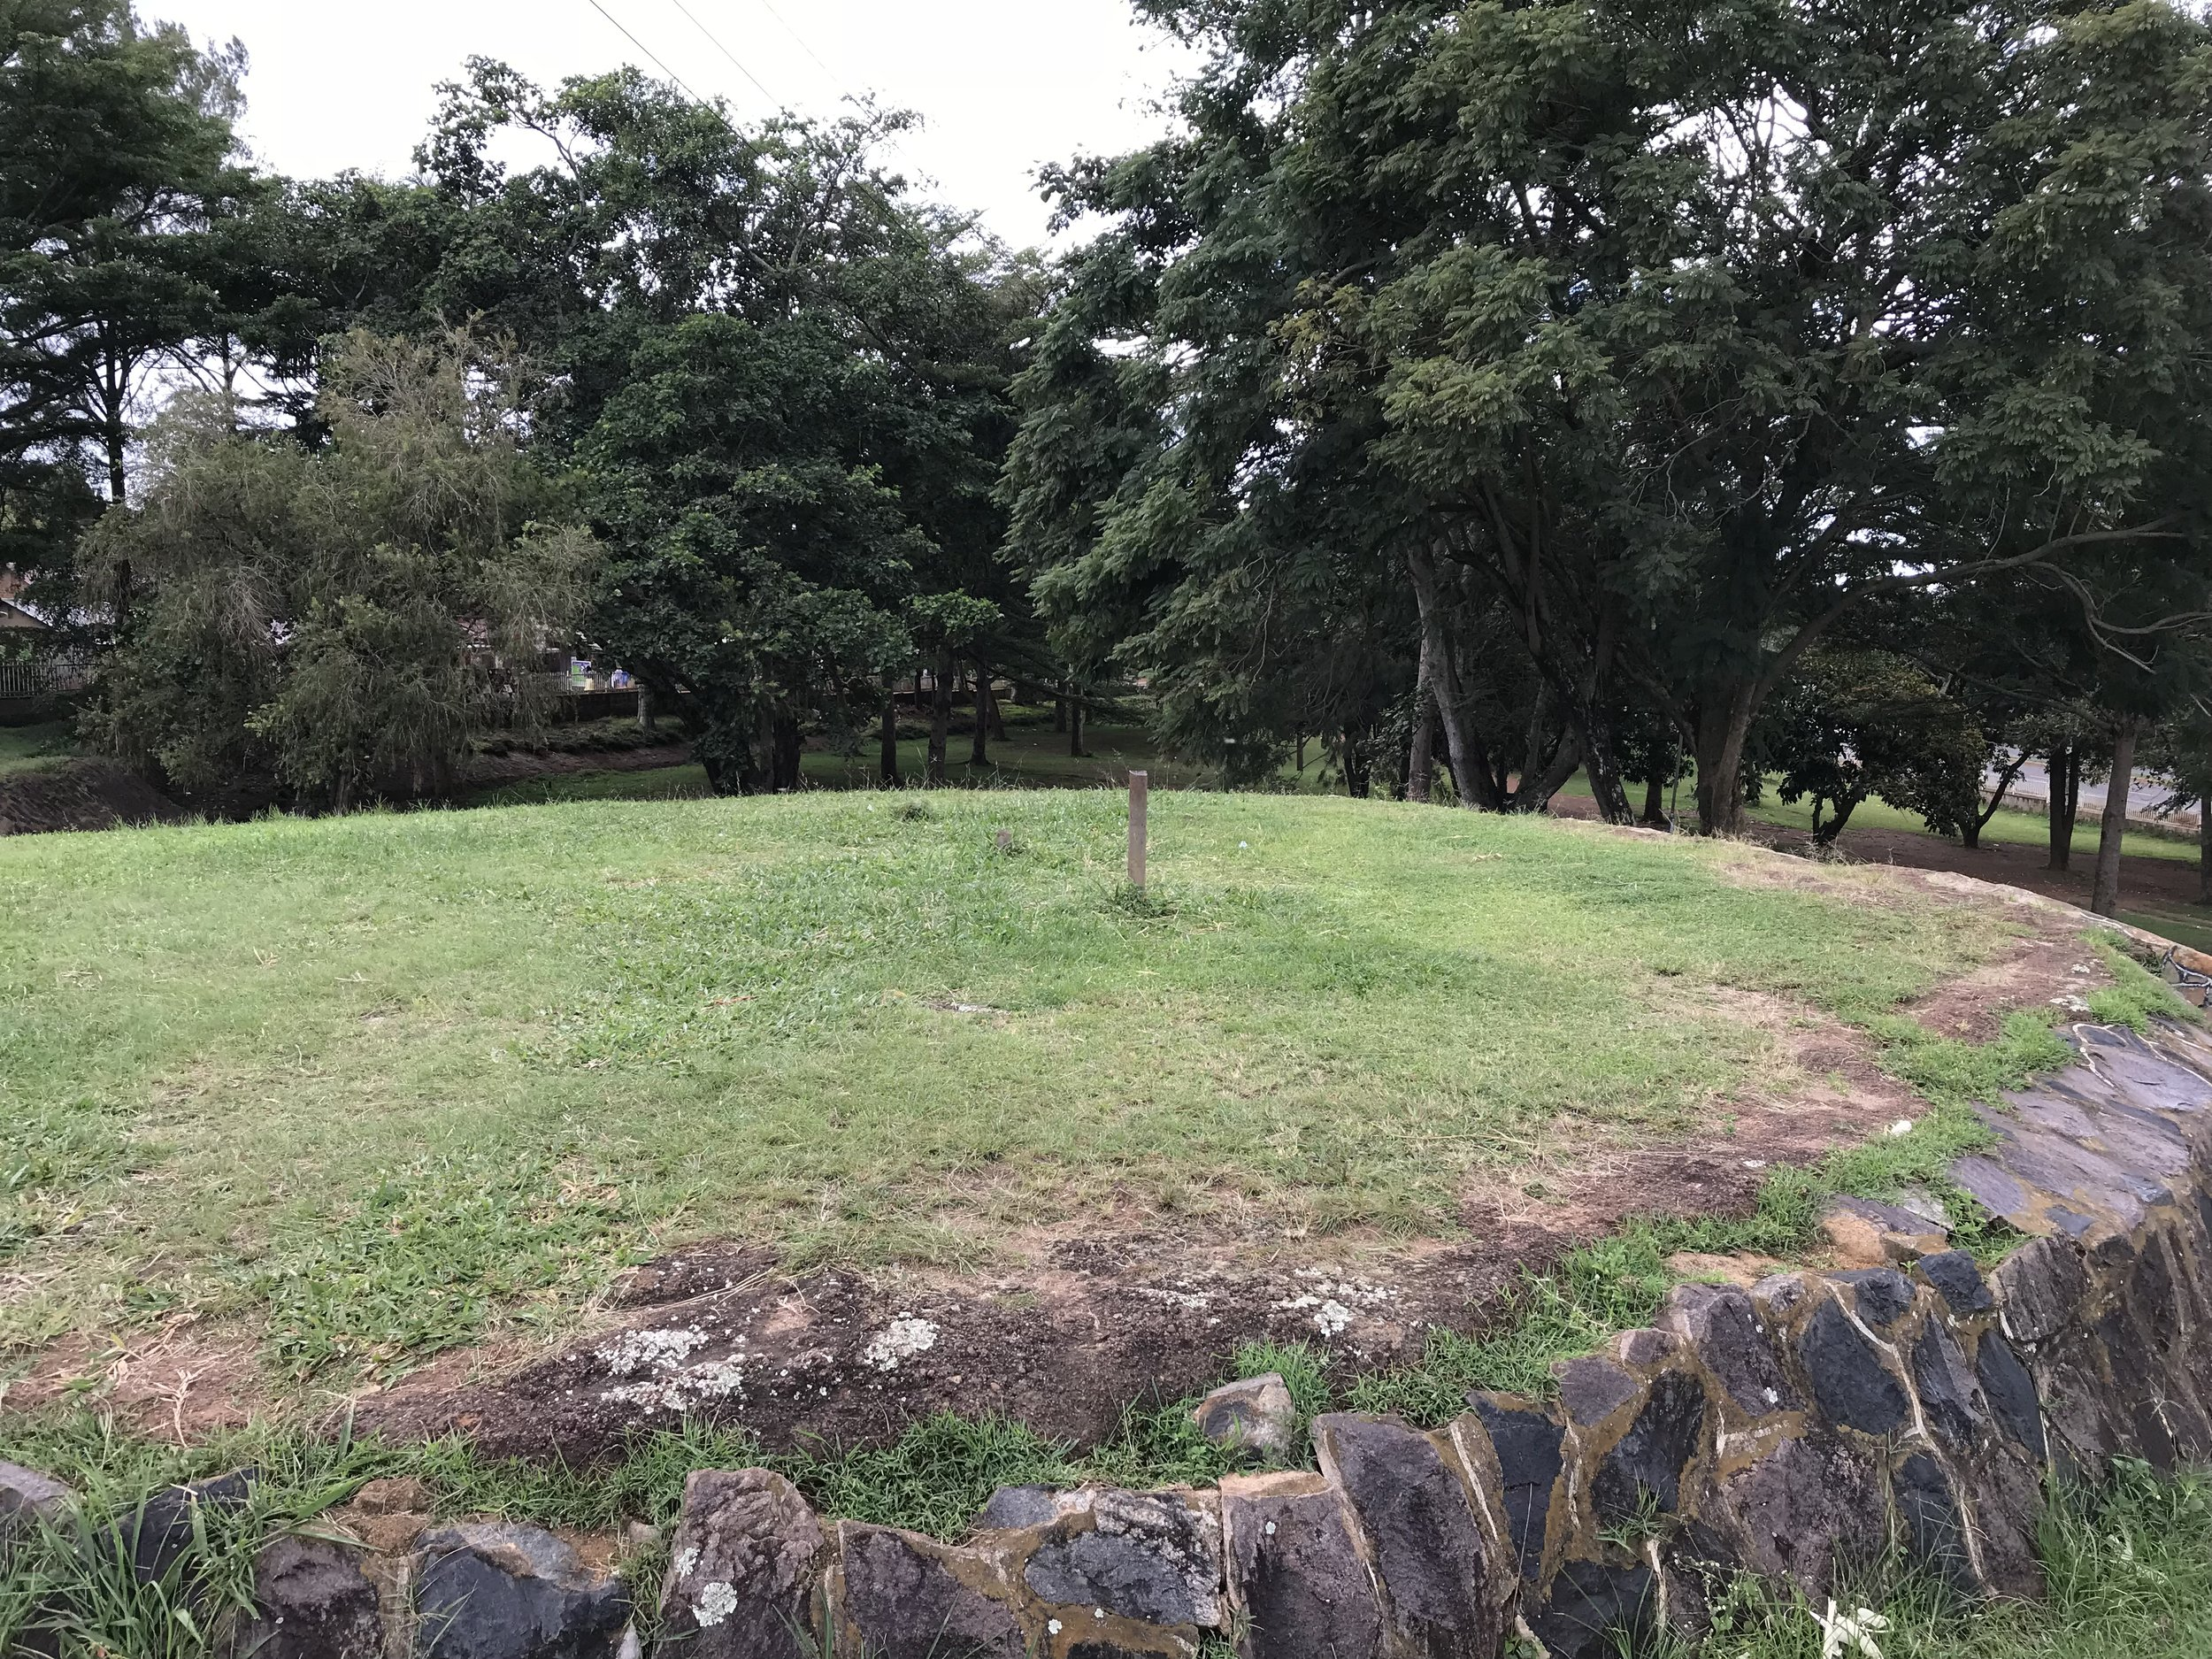 - Upon entering the park, we saw a mighty mound in our vicinity. We got to learn that this mound had previously housed three flags; the Ugandan Flag, Entebbe municipality Flag and East African Flag. Due to theft , the space was now left vacant.  The Mayor's garden was officiated by the president of Uganda in 1994 however, the plaque with its inscription was scratched  off over the years.  The decision to build a monument onto this vacant space was made based on the fact that this move would evoke more reflection on the act itself in consideration of the political contention that the unresolved murders stirred last year. The plan for the coming weeks is mobilising the local community of Entebbe to participate in our interactive and performative project. We are truly excited and grateful to have come this far!